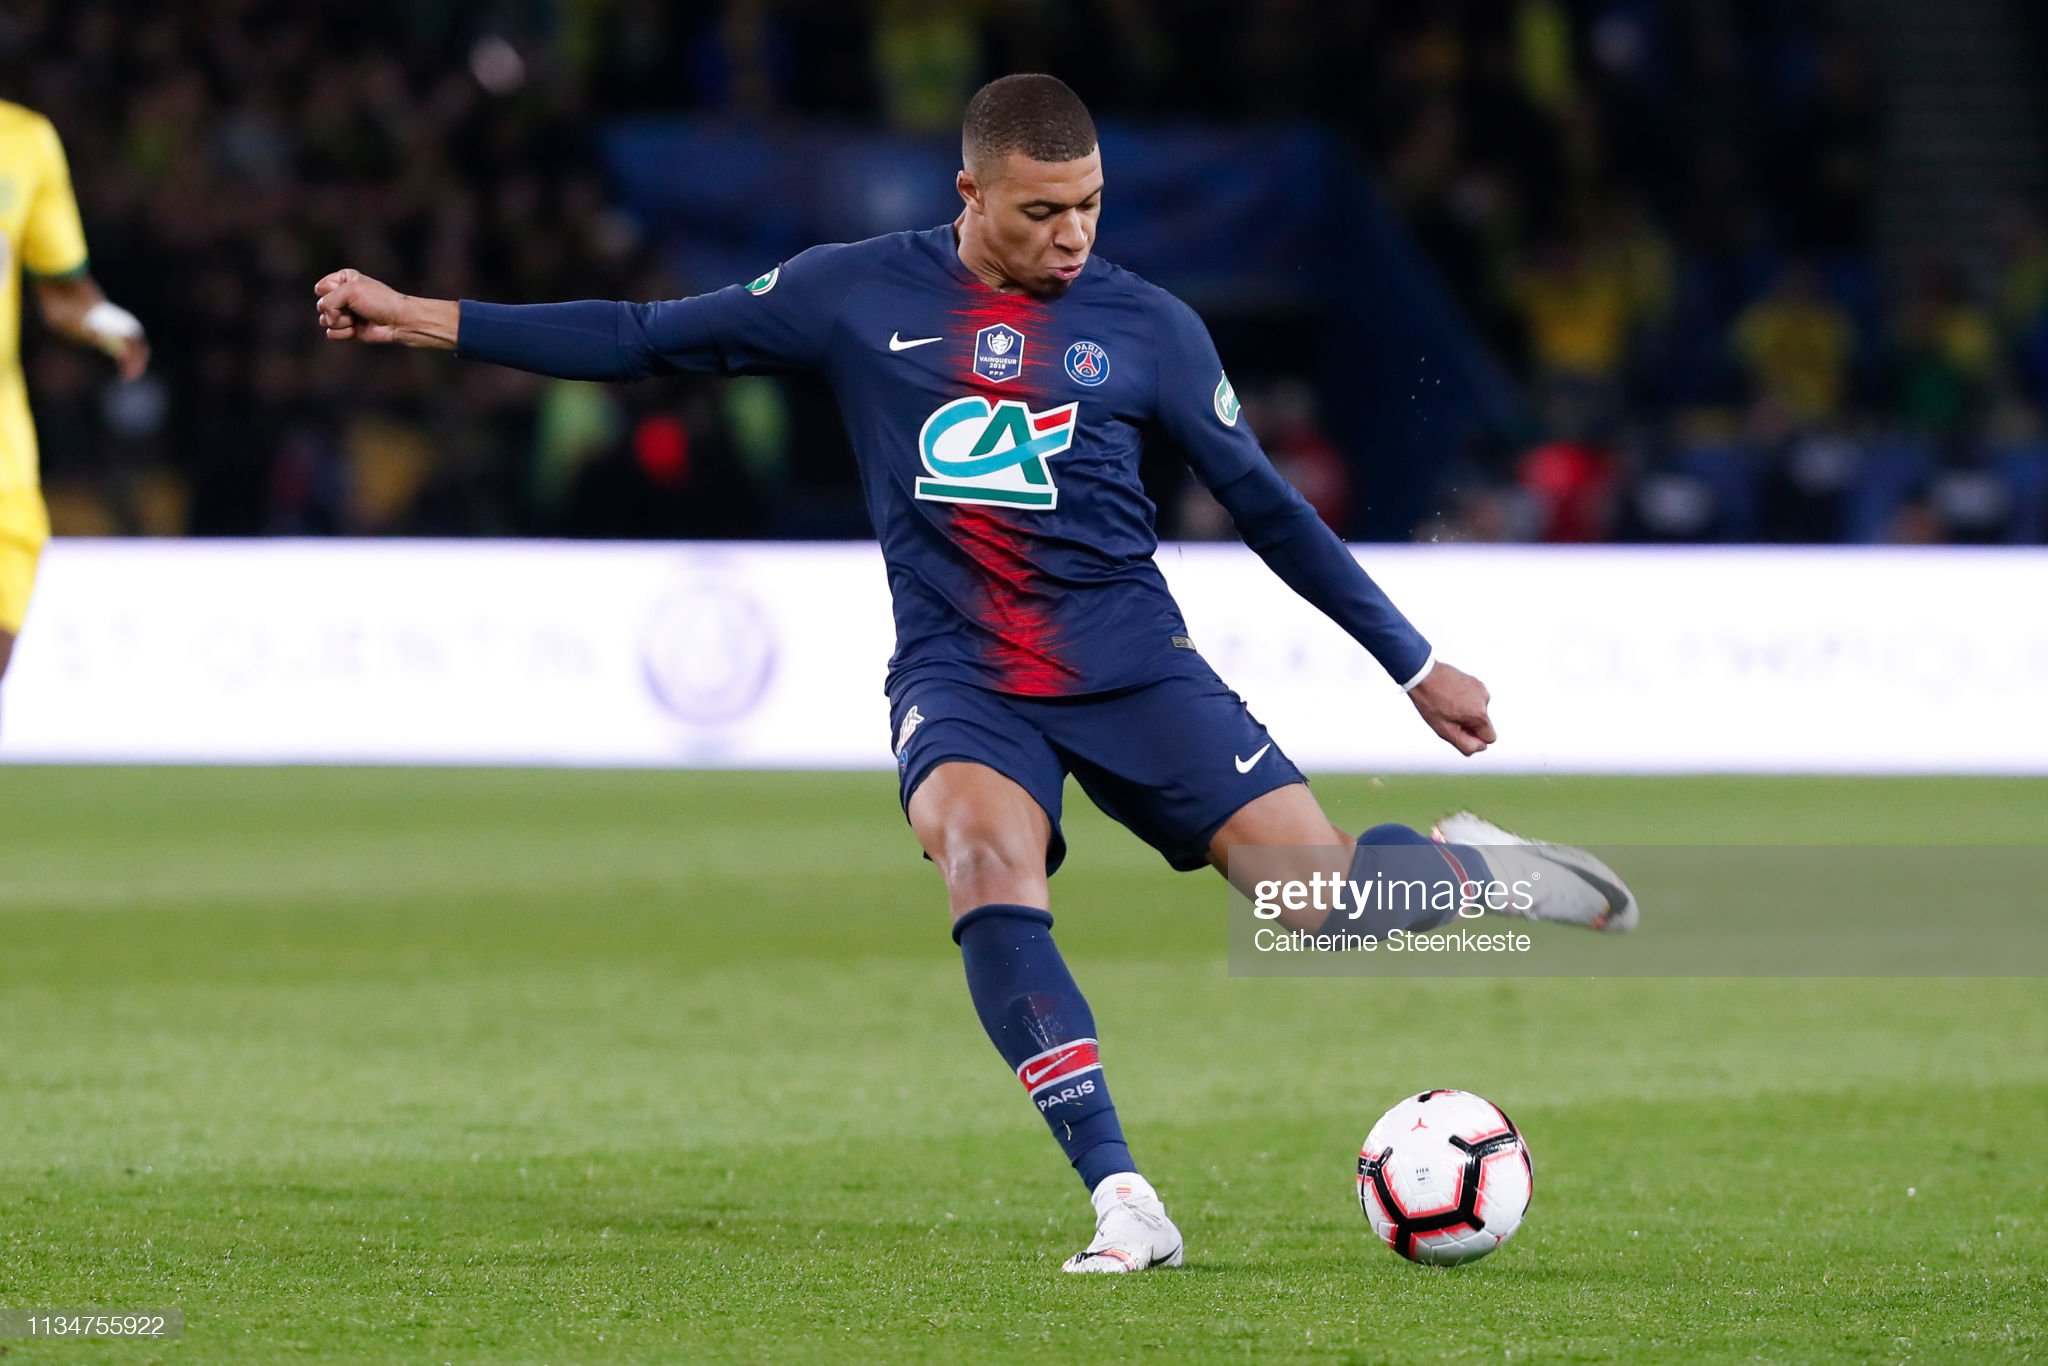 Paris Saint-Germain v FC Nantes - Coupe de France: Semi Final : News Photo